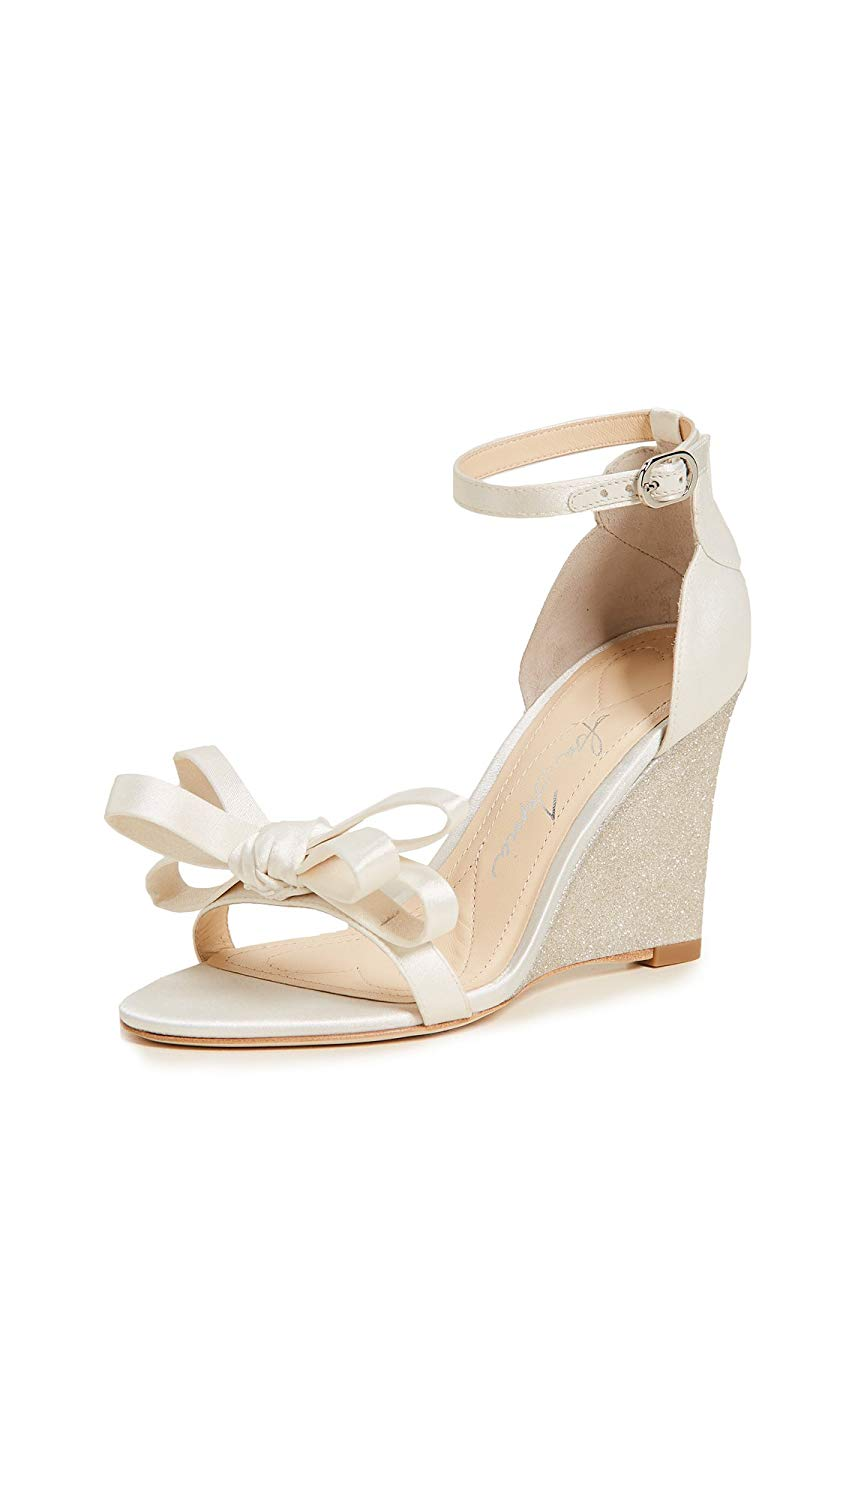 wedding wedges with white bow in front